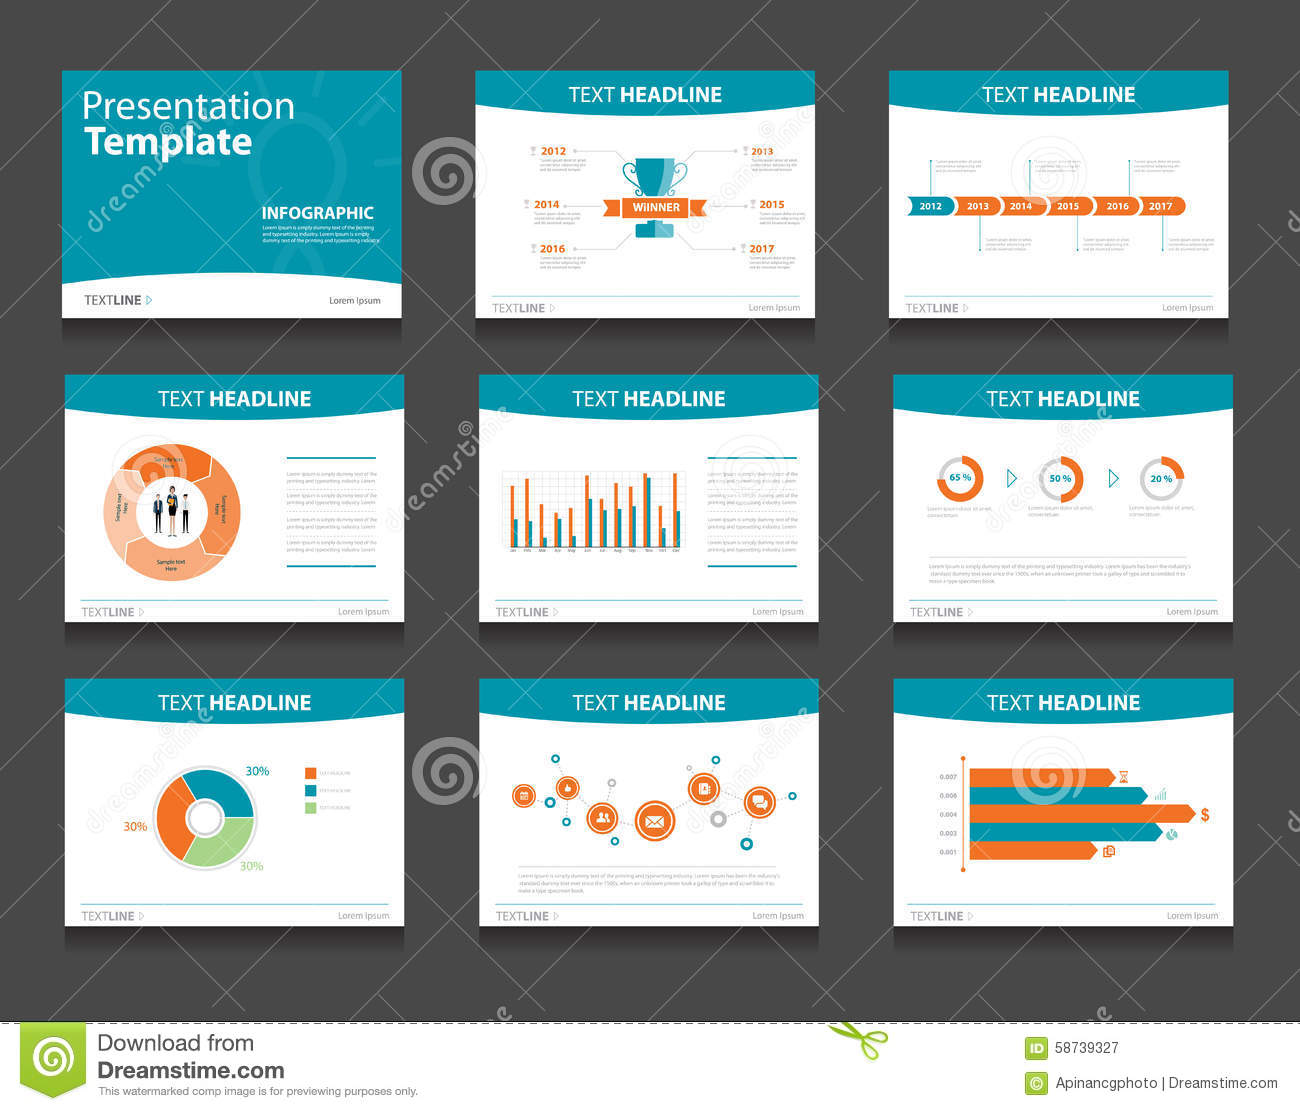 Infographic powerpoint template design backgrounds business infographic powerpoint template design backgrounds business presentation template set fbccfo Image collections